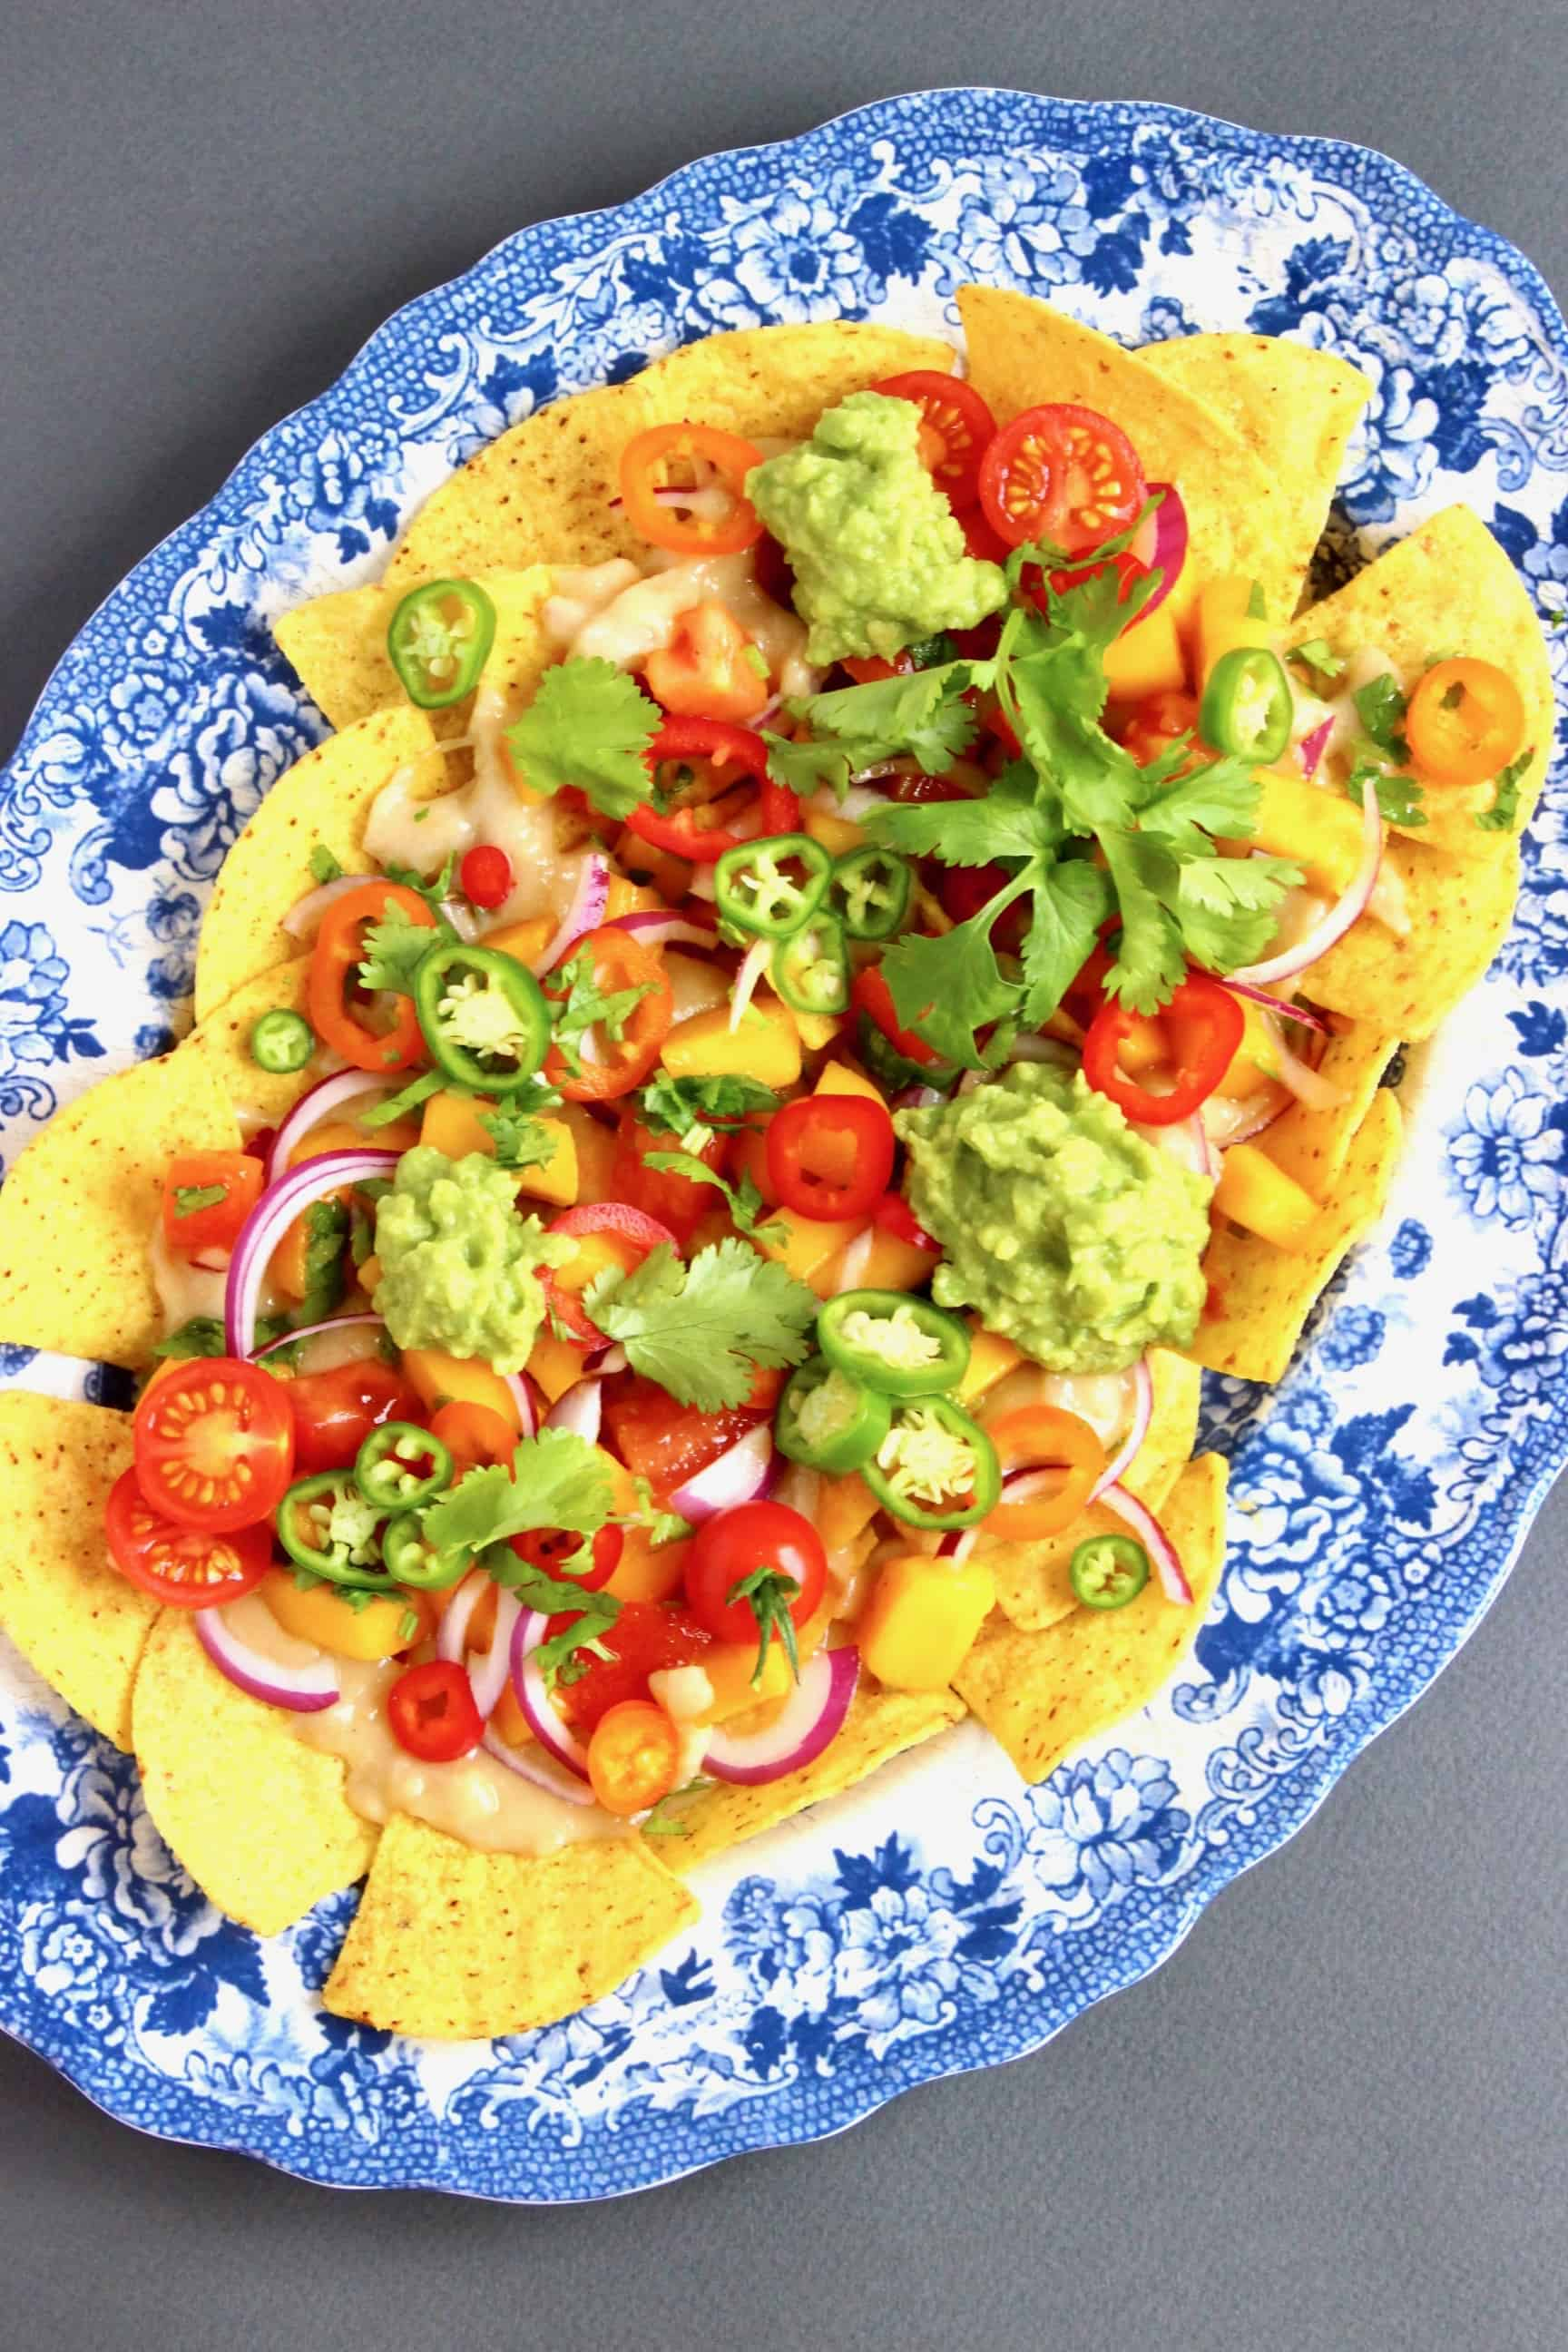 Nachos topped with lots of different vegetables on a oval blue plate against a grey background